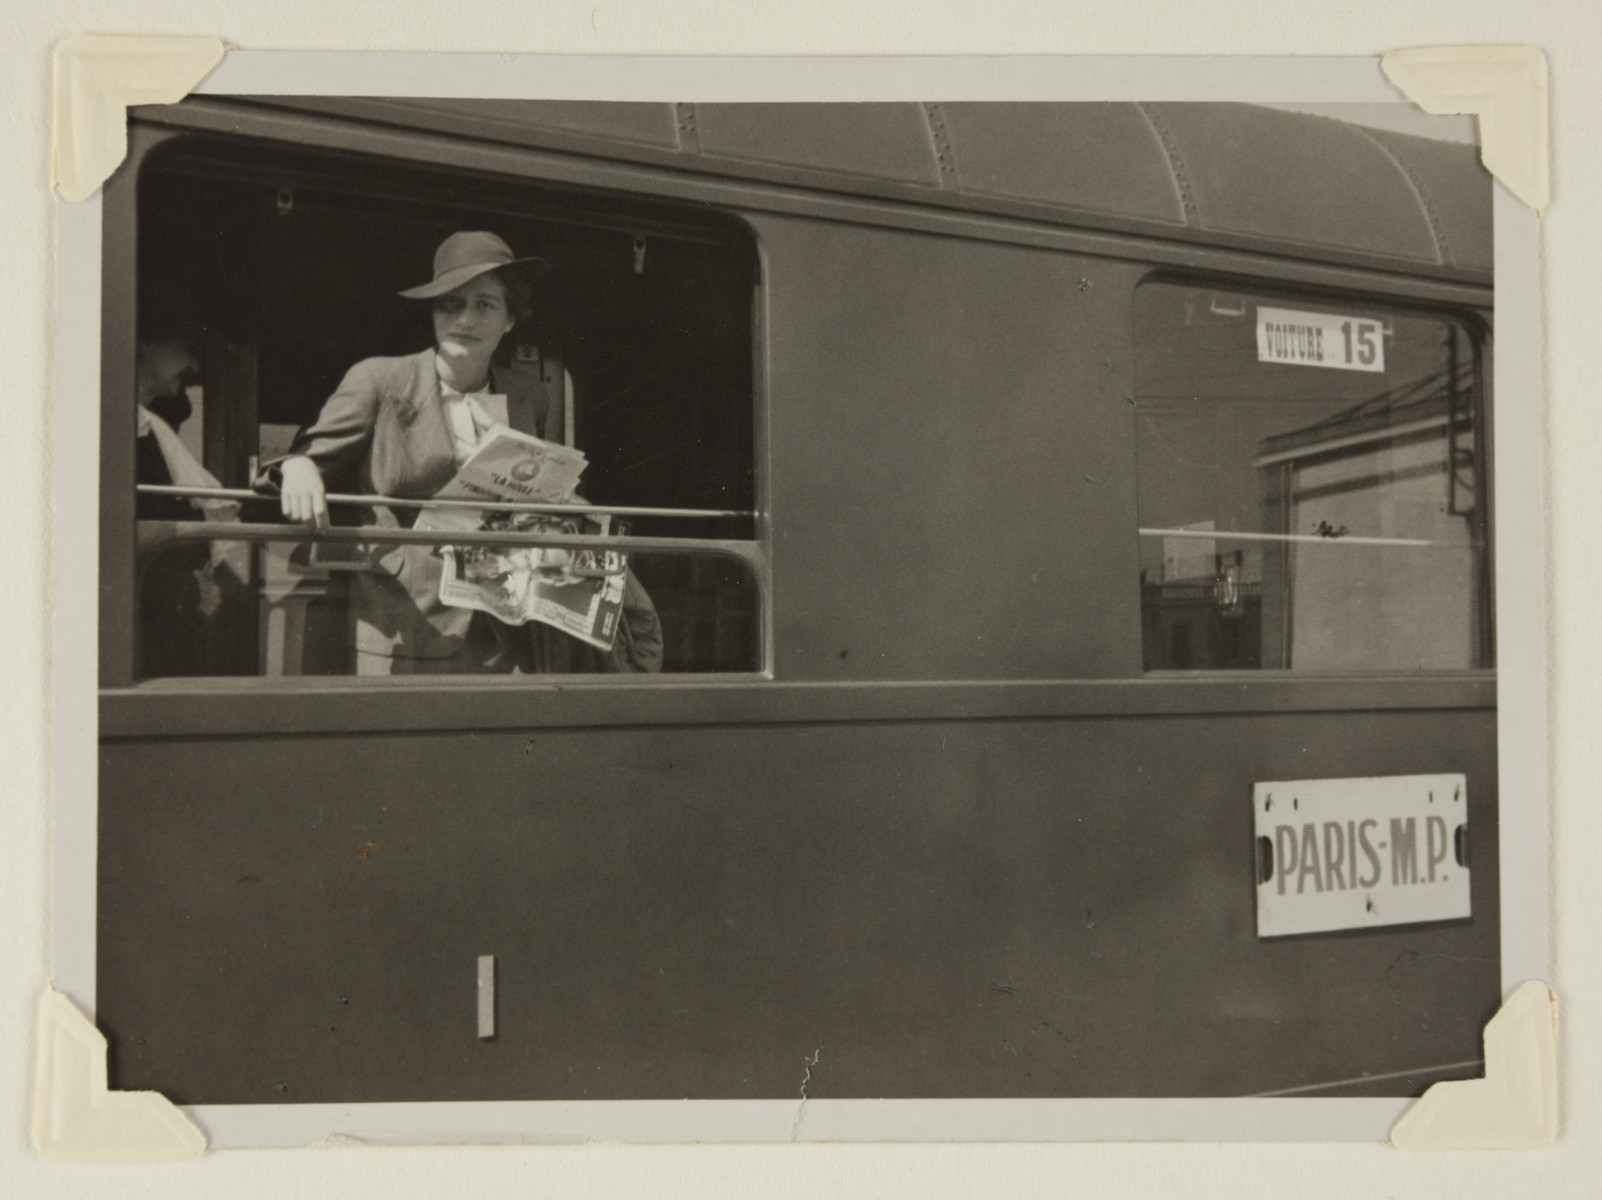 Maria Altmann (nee Bloch-Bauer) looks out a train window during her honeymoon to Paris.